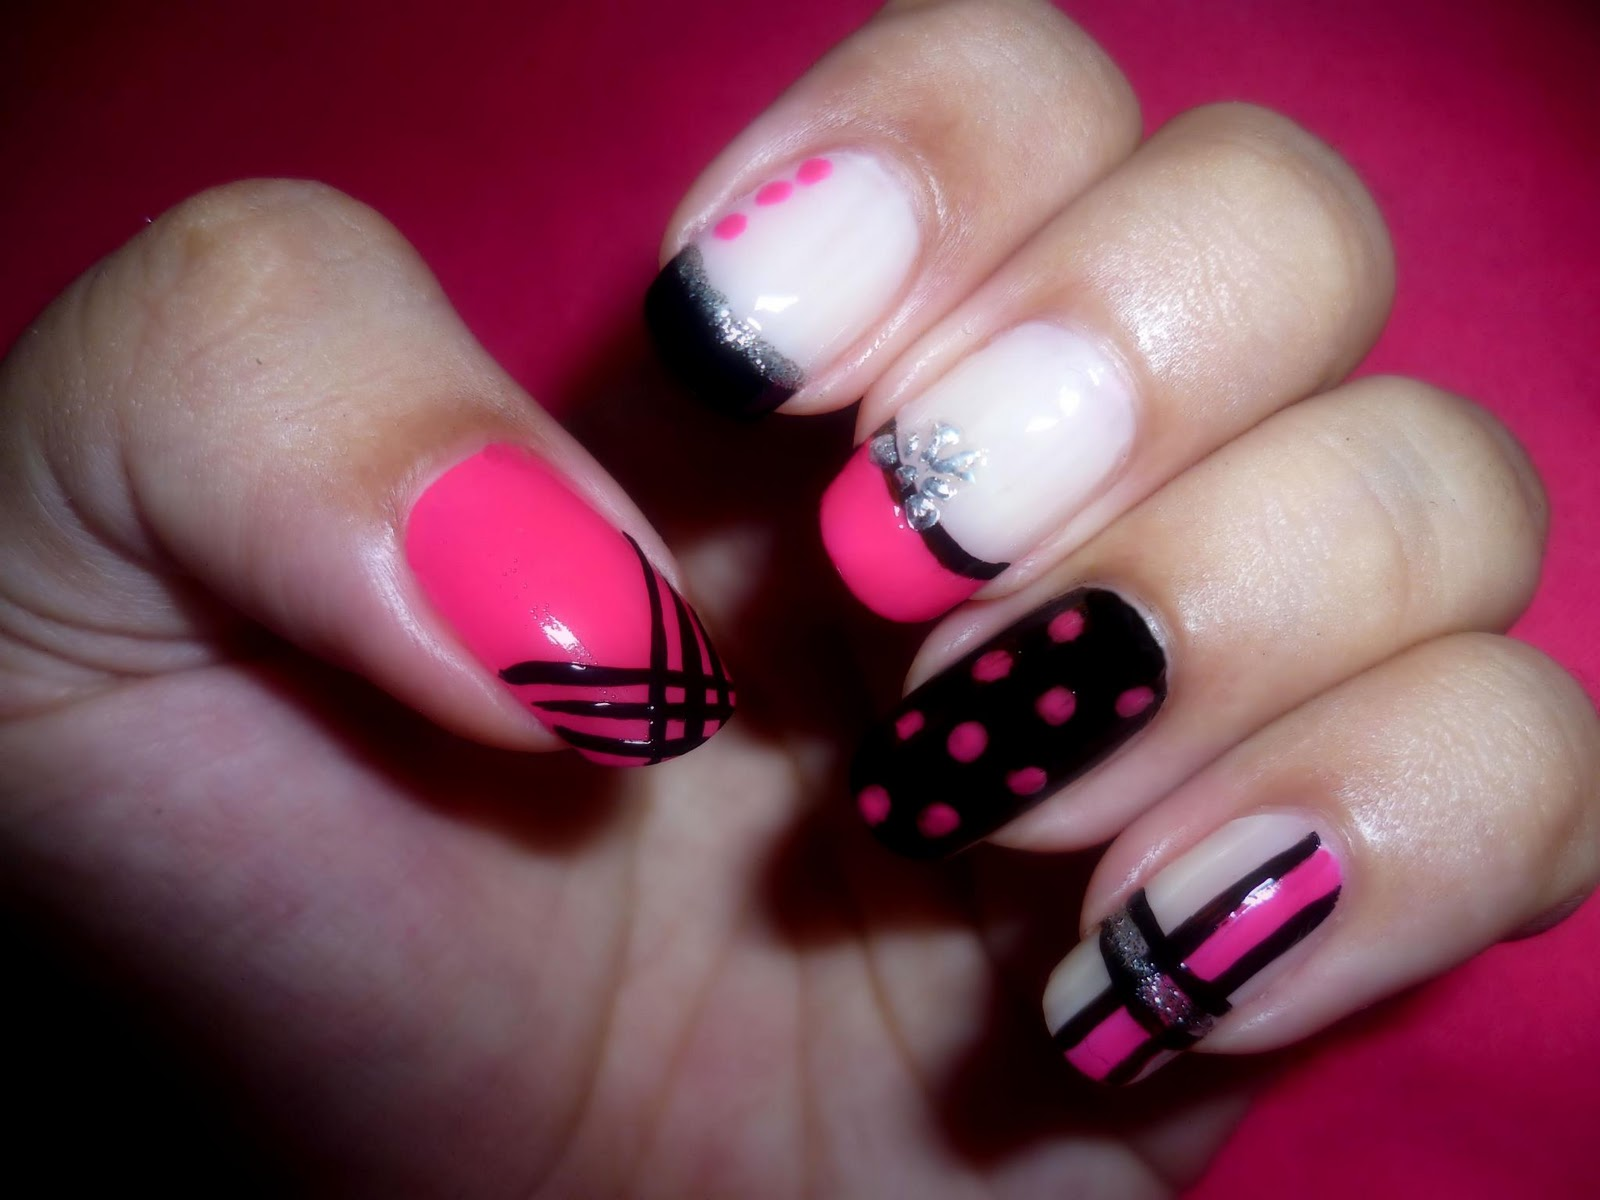 nails and the makeup: noviembre 2011